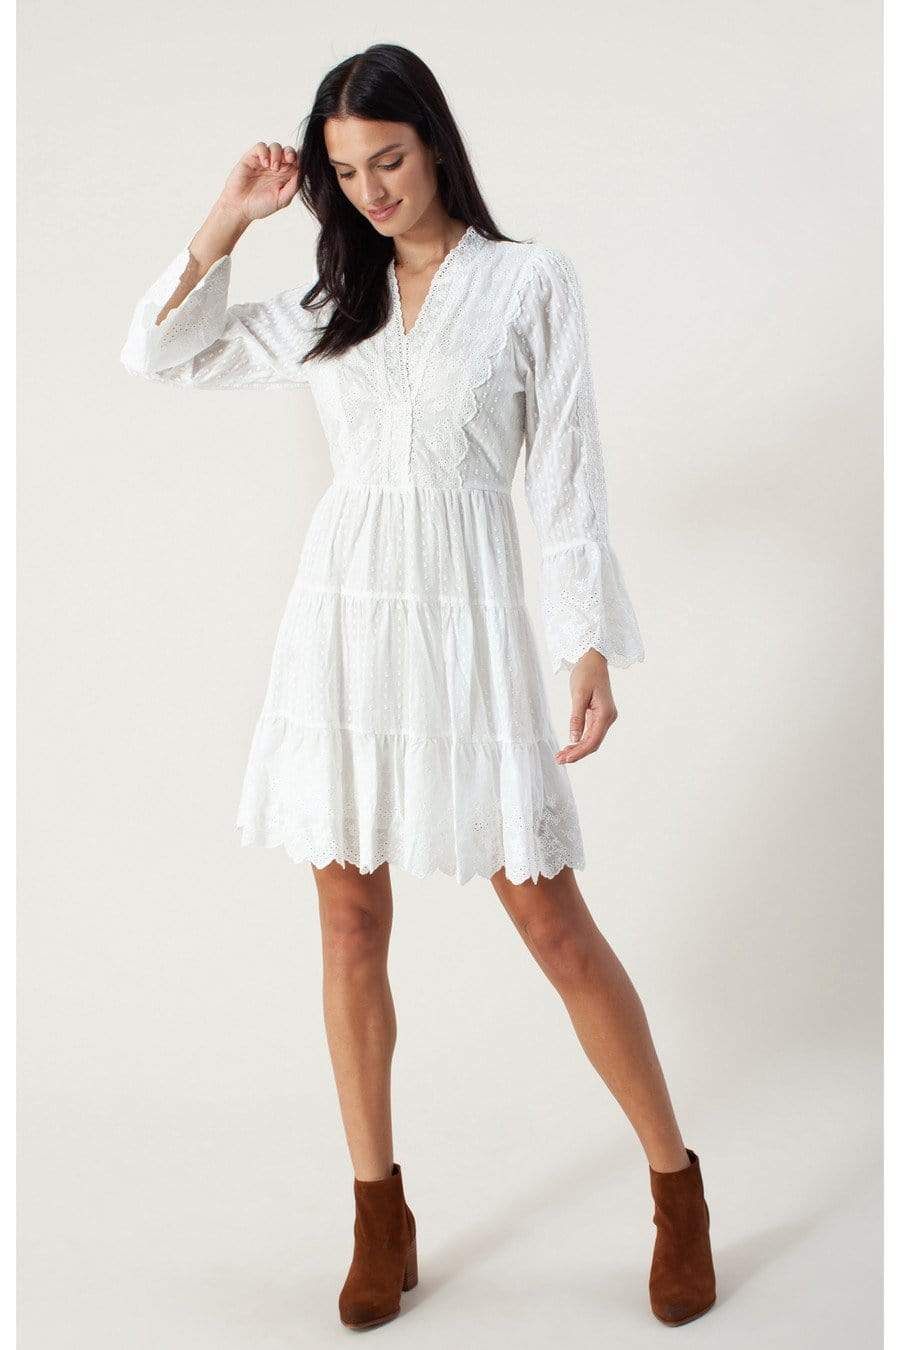 Hale Bob Dresses Hale Bob Mila Dress White 05GS6884 izzi-of-baslow